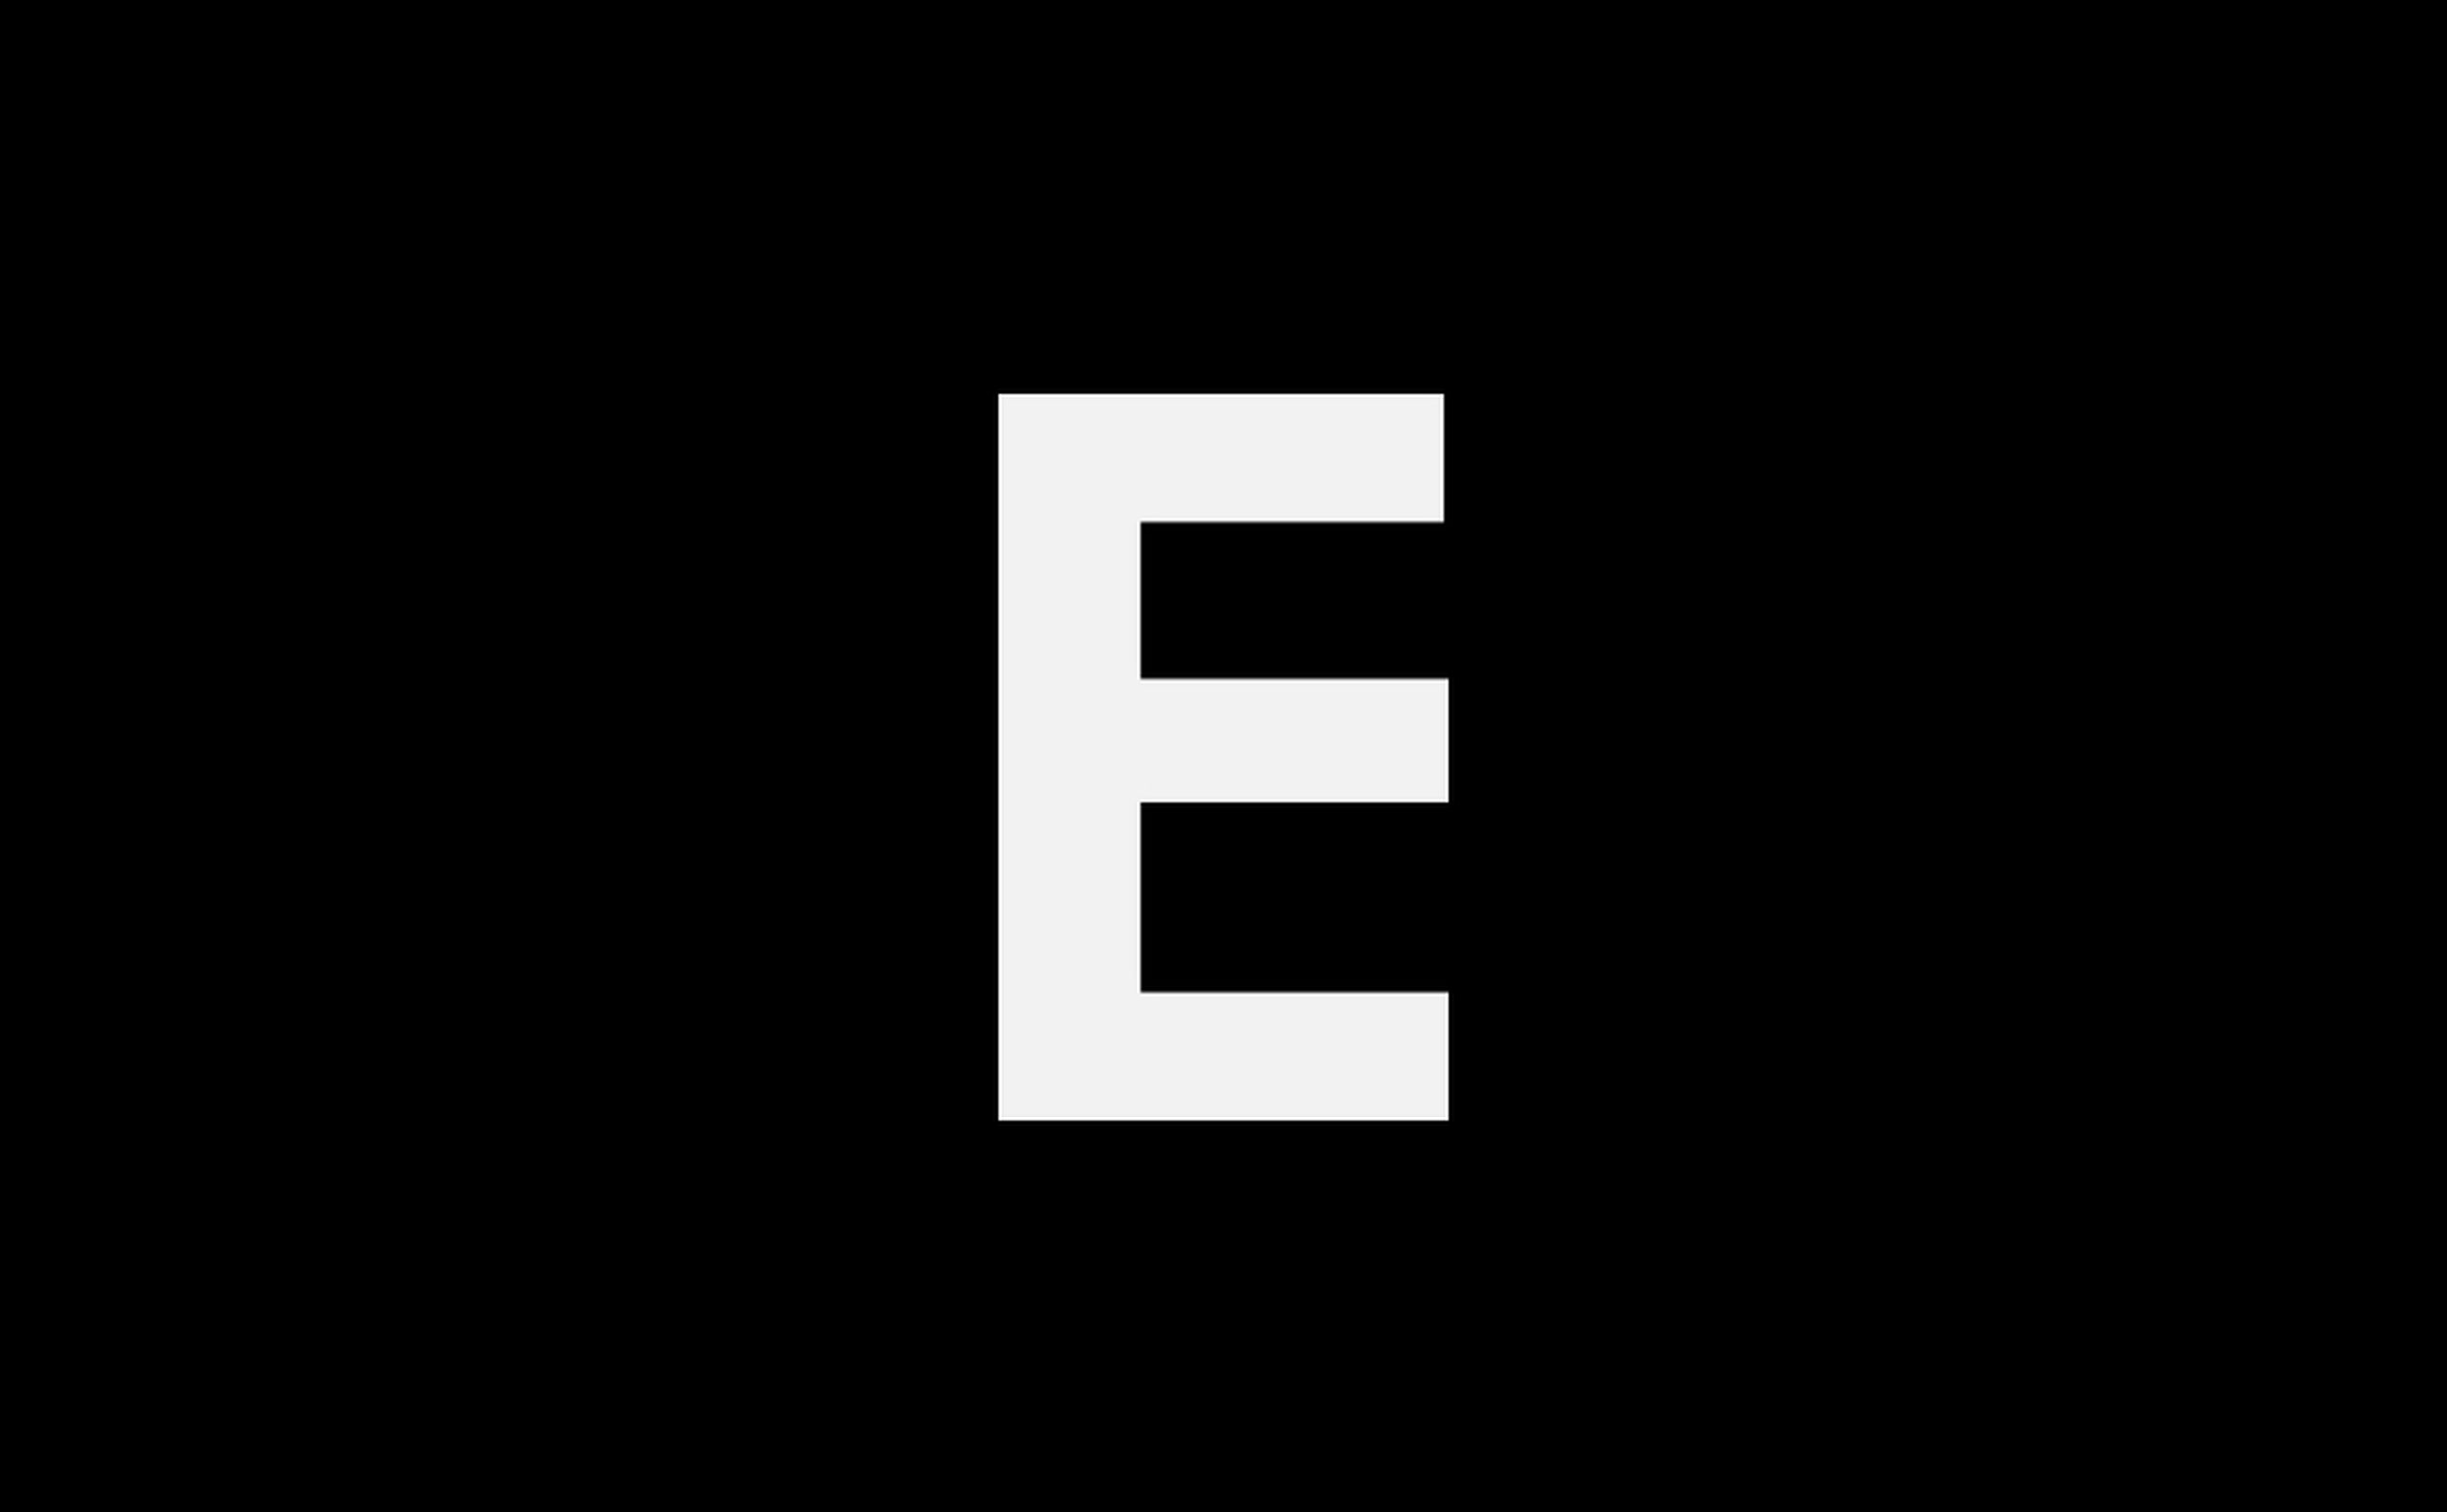 SIDE VIEW OF HORSE STANDING IN PEN